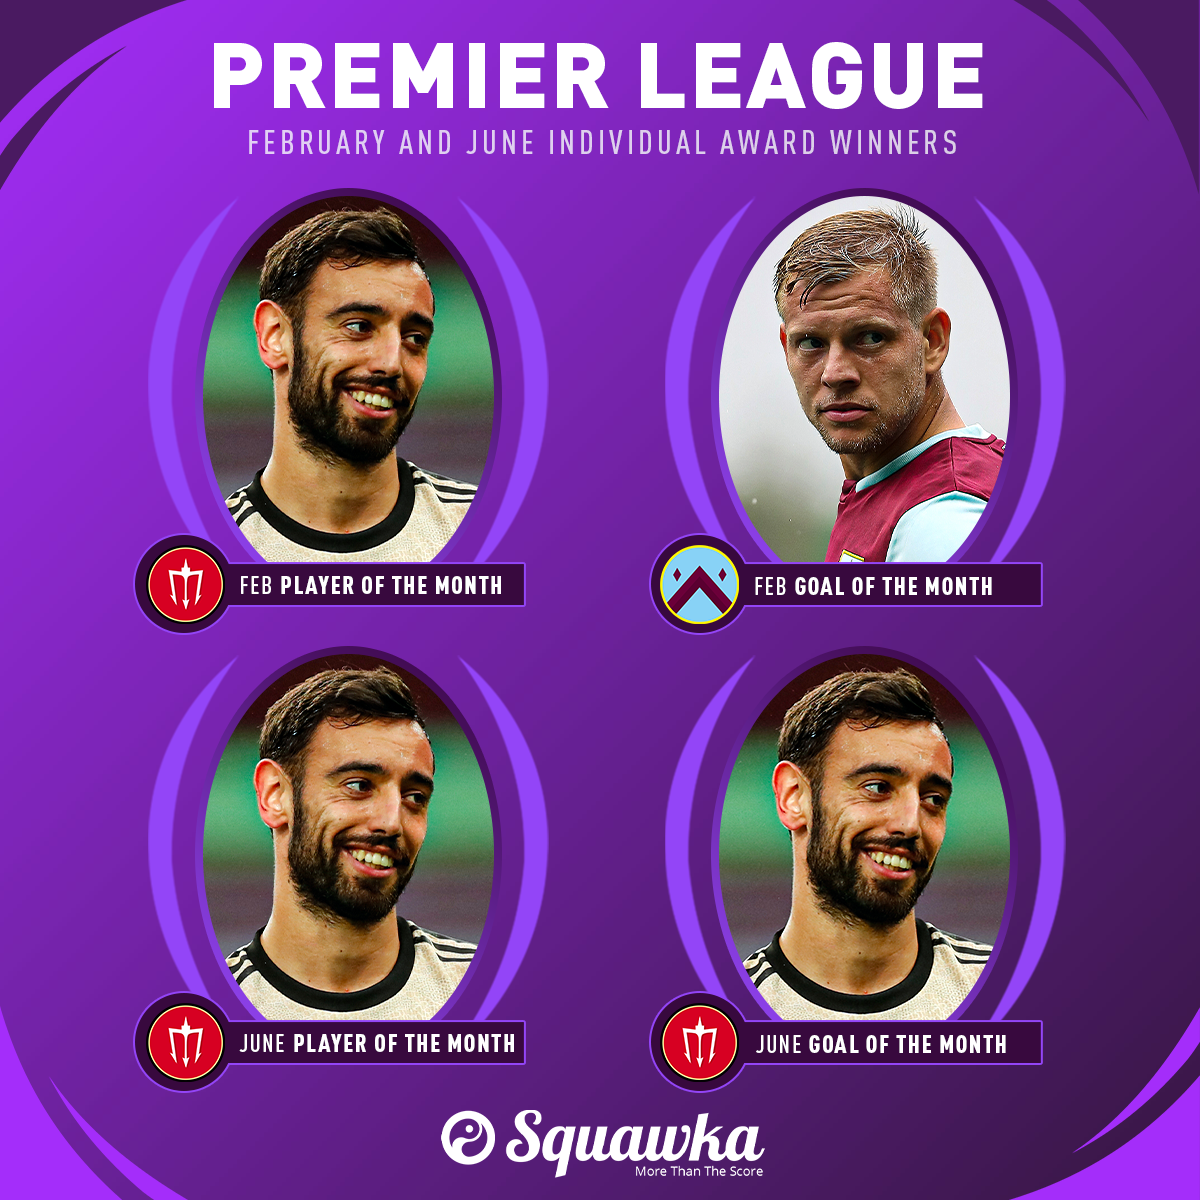 Bruno Fernandes has won 75% of the monthly Premier League player awards since making his Man Utd debut:  ✓ February Player of the Month ✓ June Player of the Month ✓ June Goal of the Month  Bonkers. https://t.co/gVM3D9SDEe